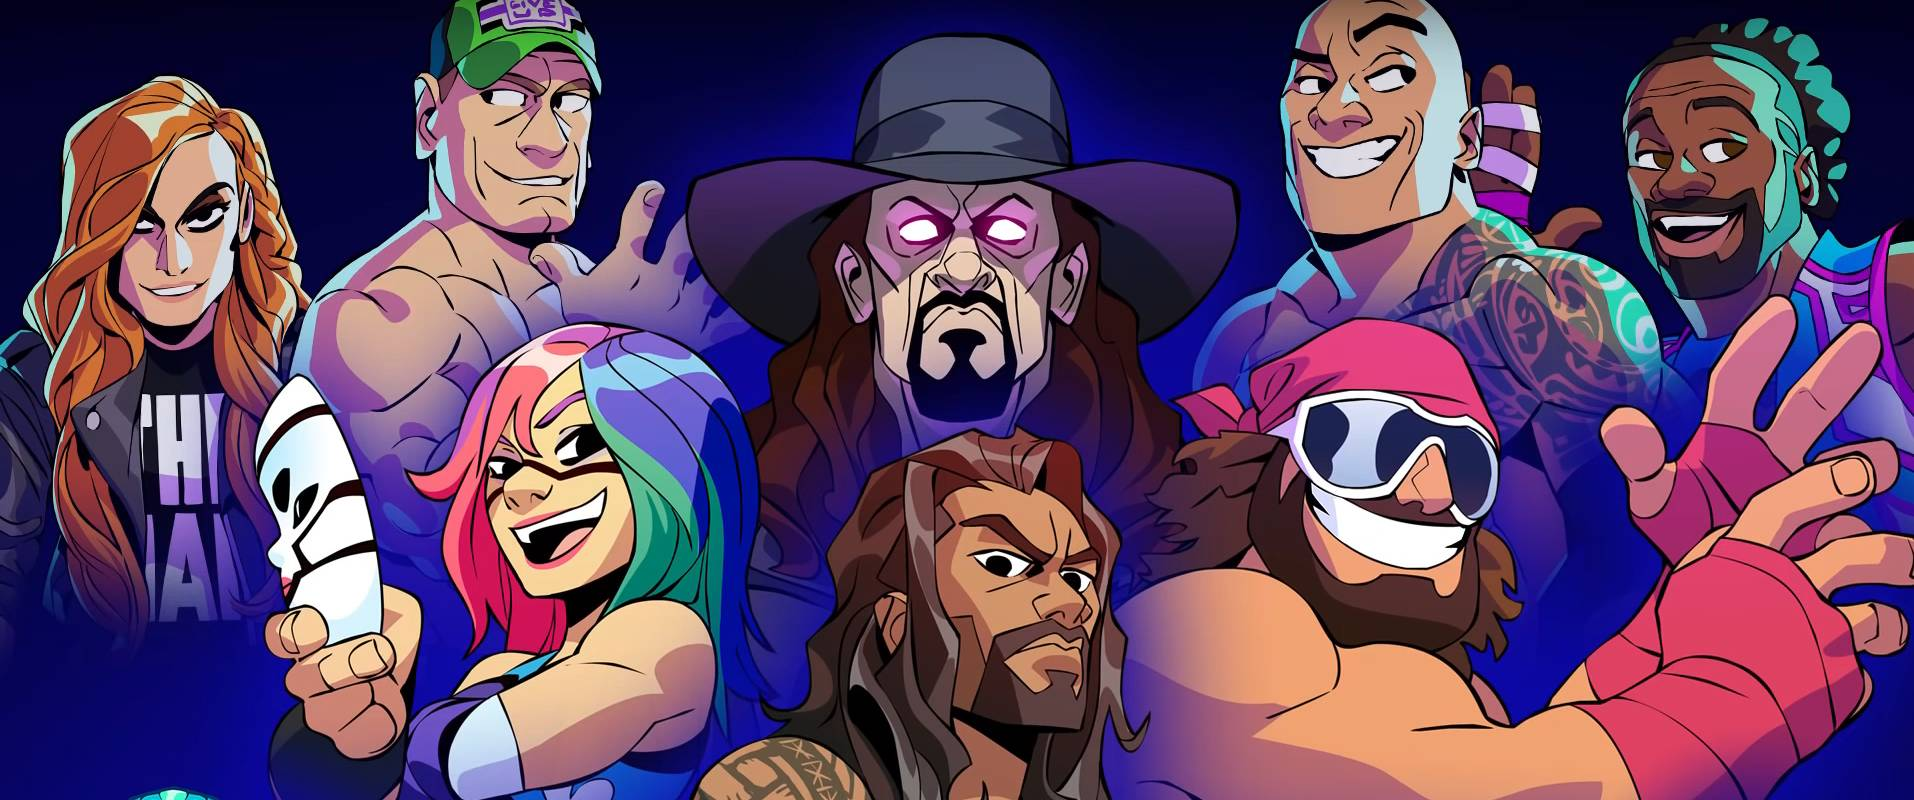 Brawlhalla Patch 3.51 Introduces Four More WWE Superstars Into the Ring